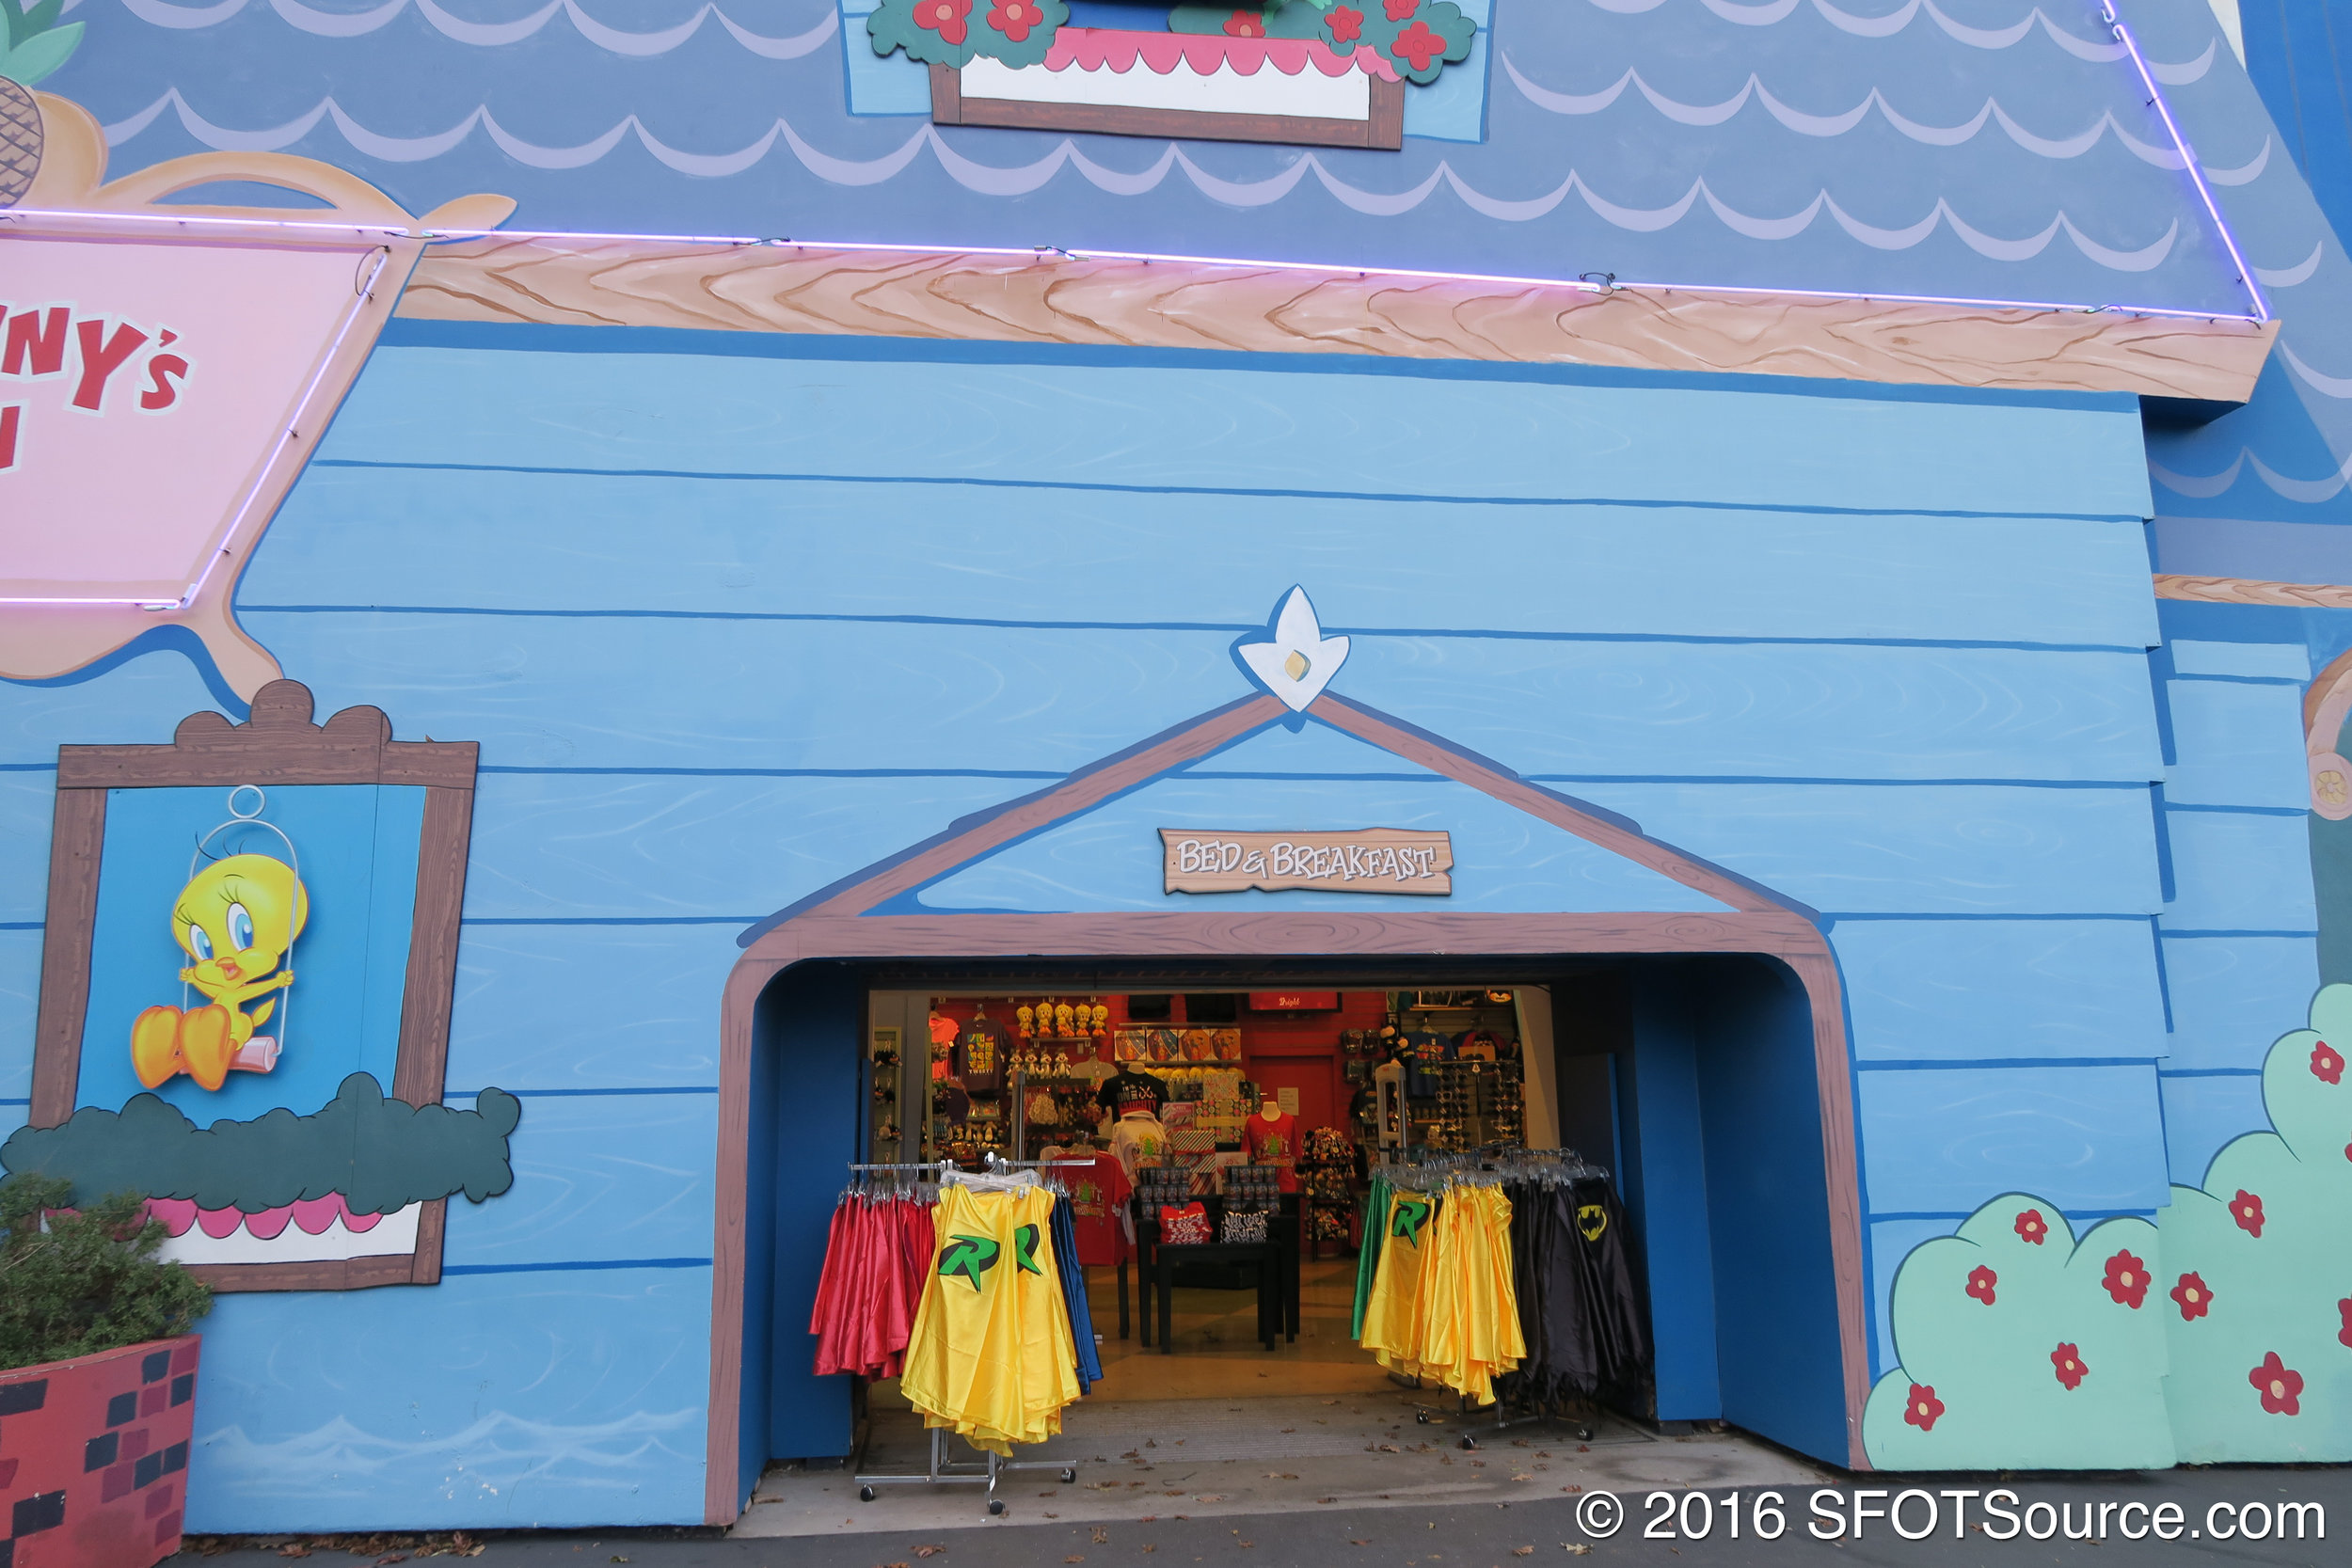 Another entrance into Looney Tunes Mall.